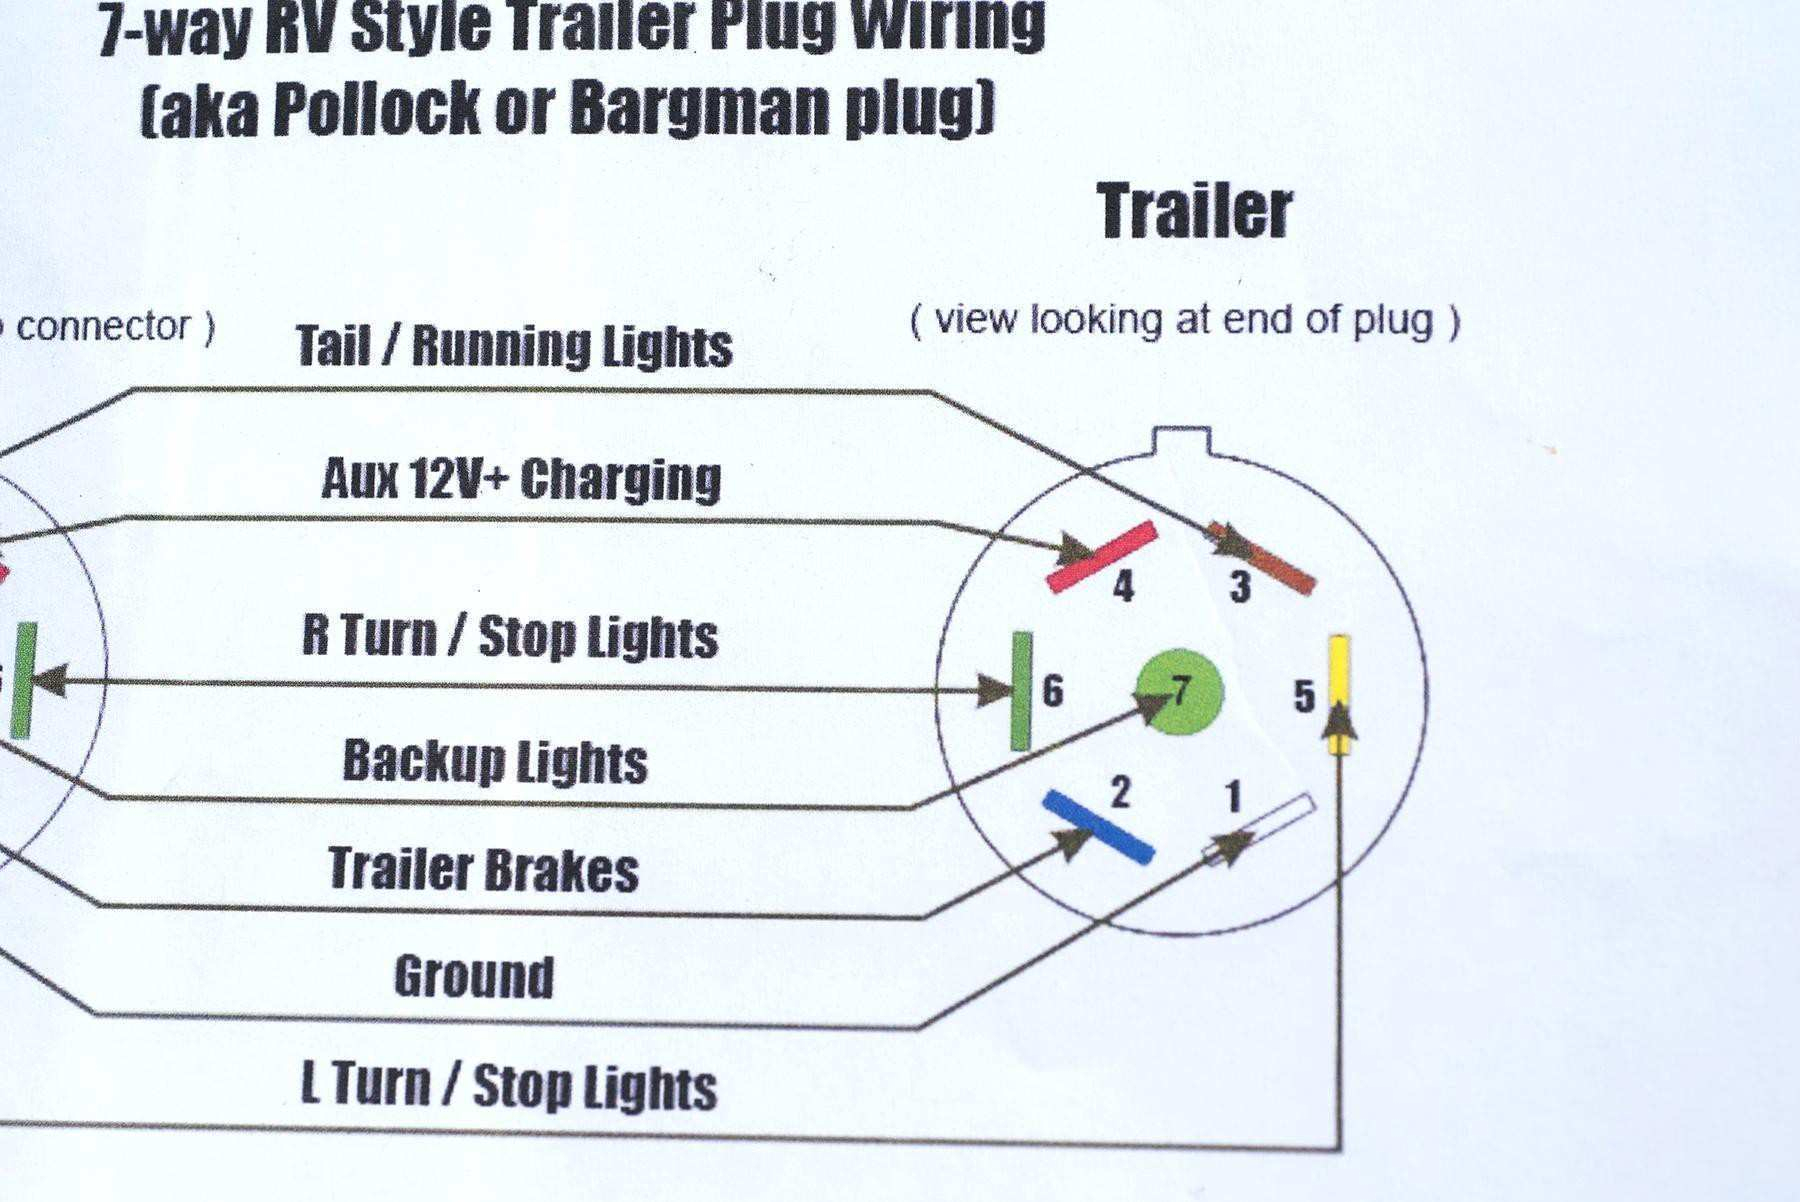 Kaufman Trailer Wiring Diagram | Wiring Diagram Library - Kaufman Trailer Wiring Diagram